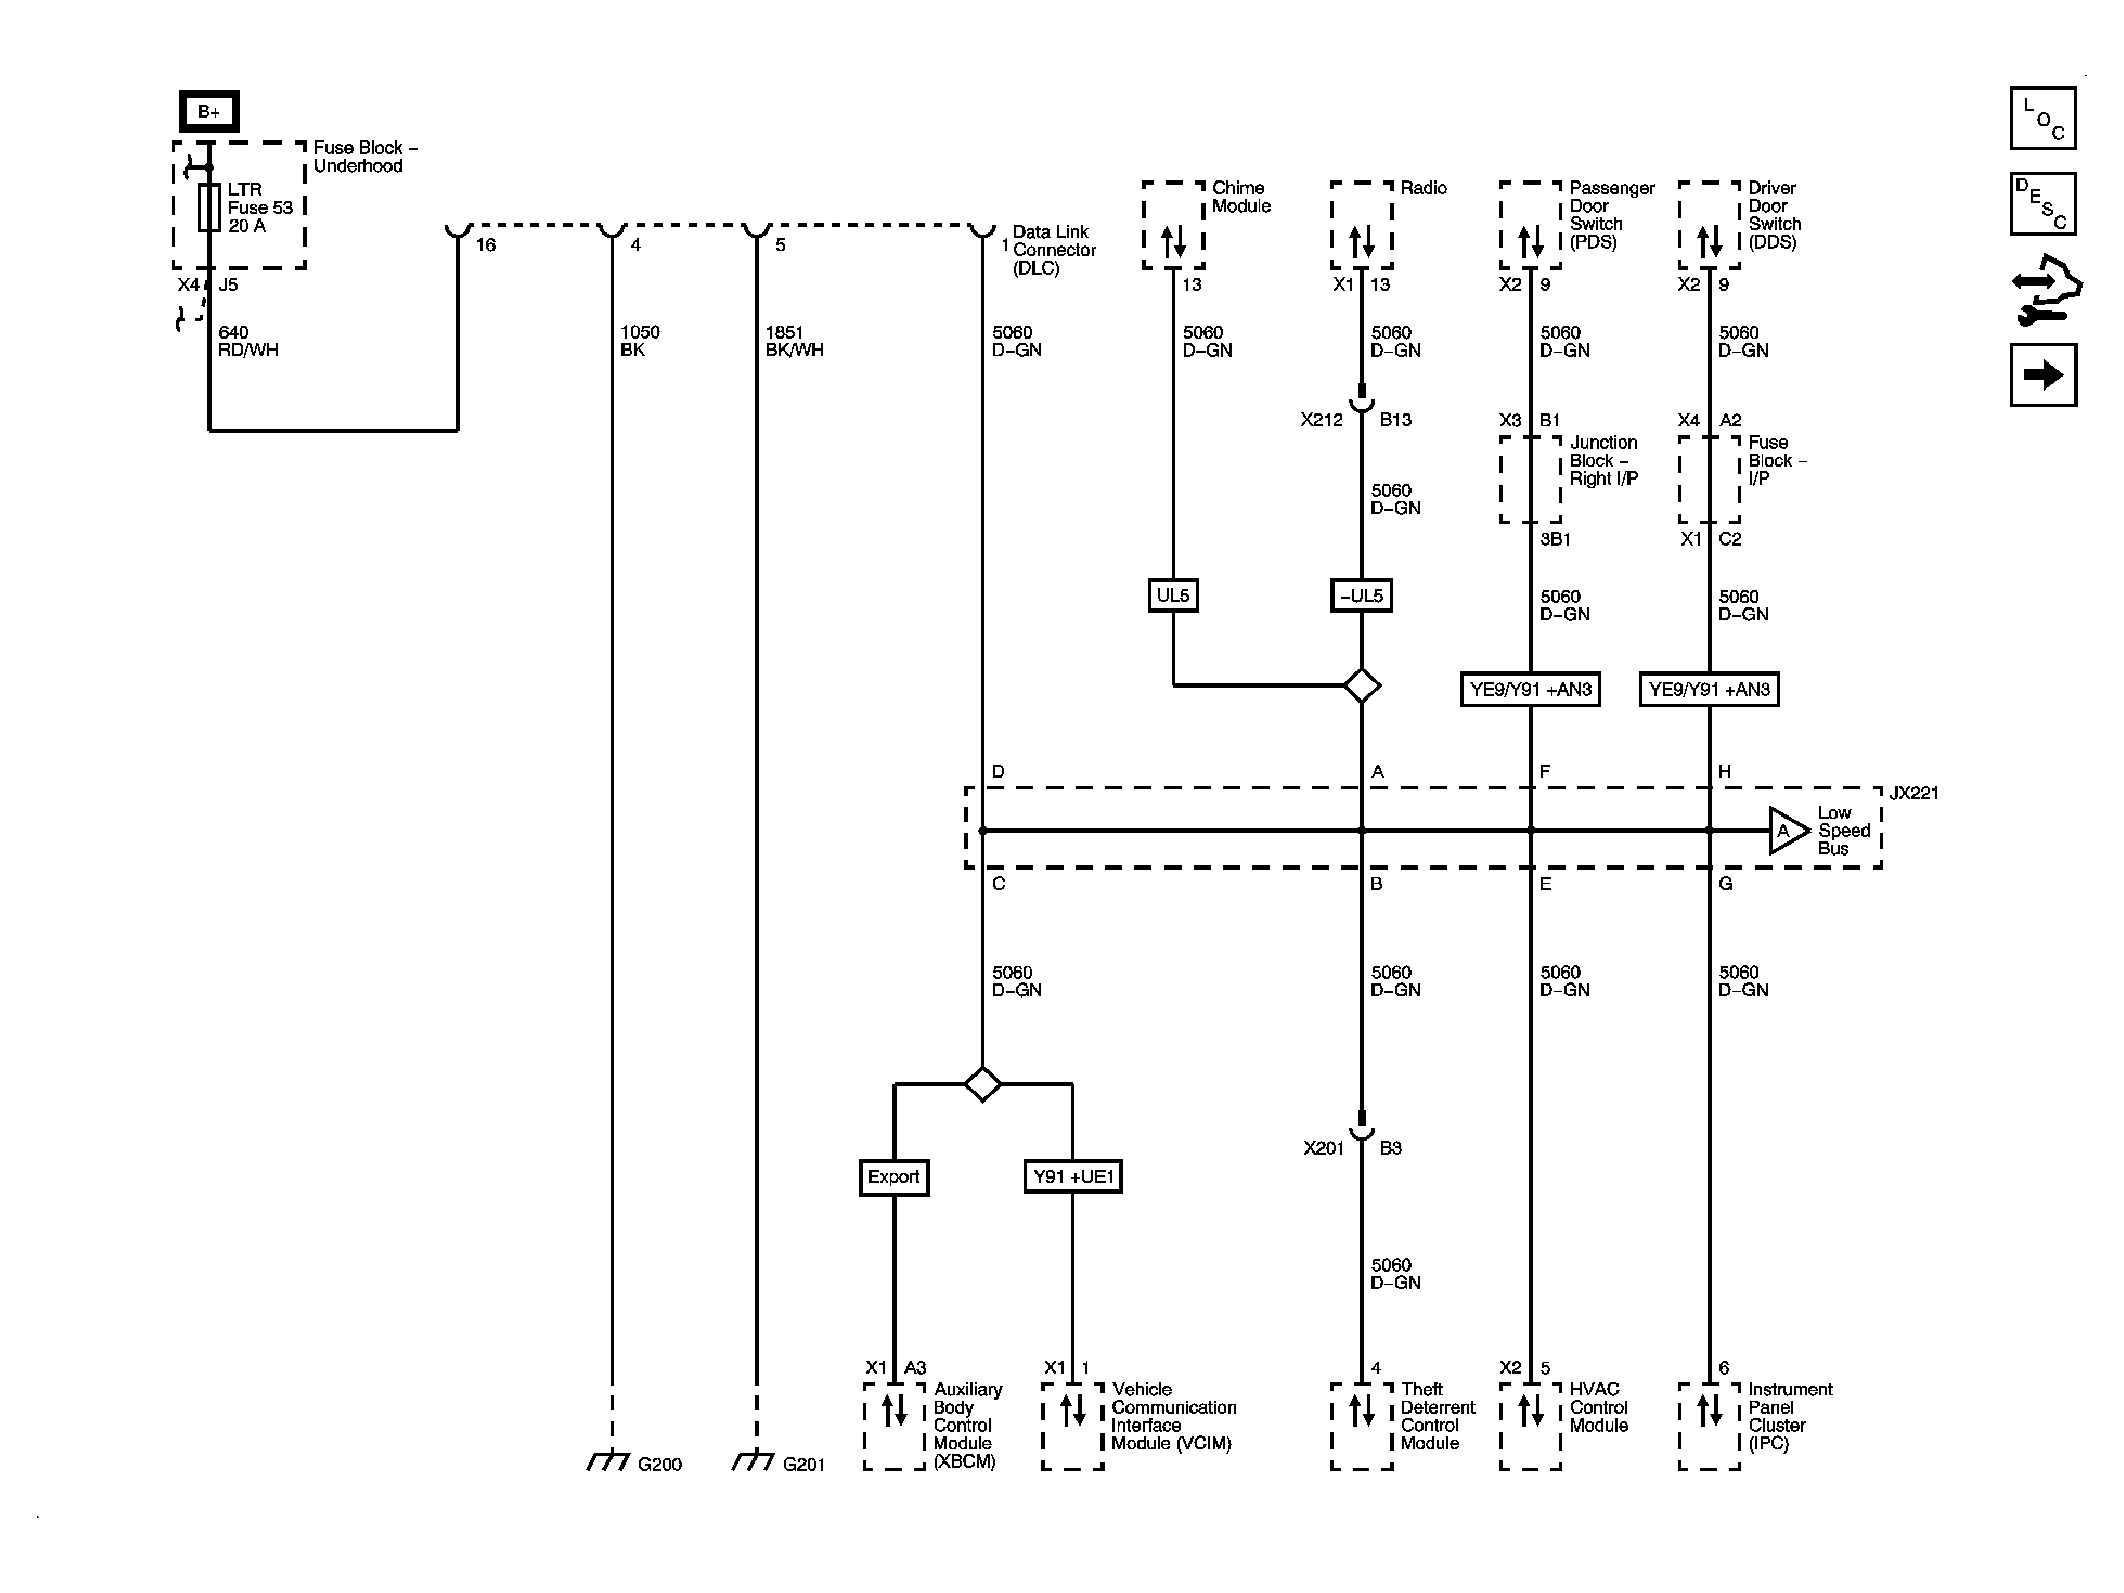 98 silverado dlc pins diagram, 2 liquid level switch running 1 motor wire diagram, data link diagram, dlc pinout diagram, obd ii connector diagram, on 2010 traverse dlc wiring diagram